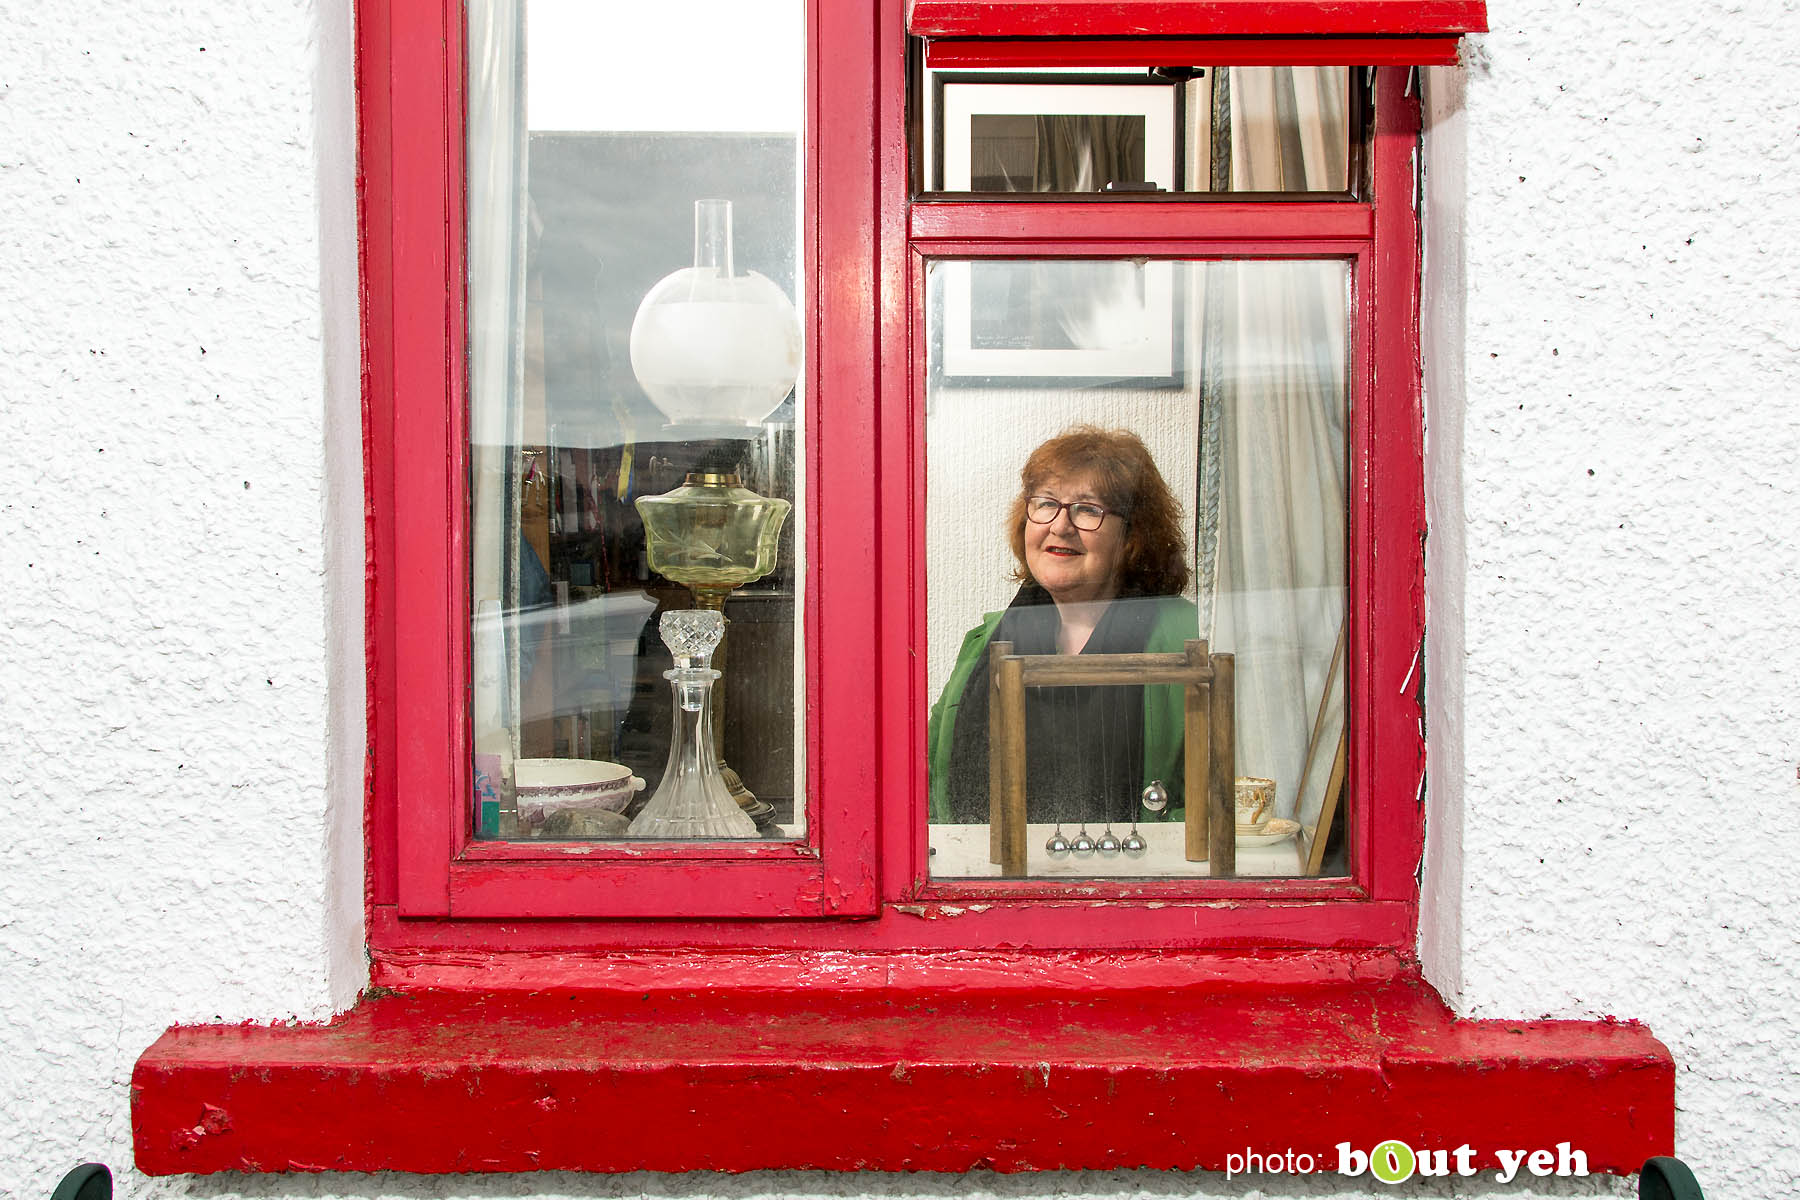 Liz Weir, Ballyeamon Barn Hostel, Glenariff, Northern Ireland - photo 1031.